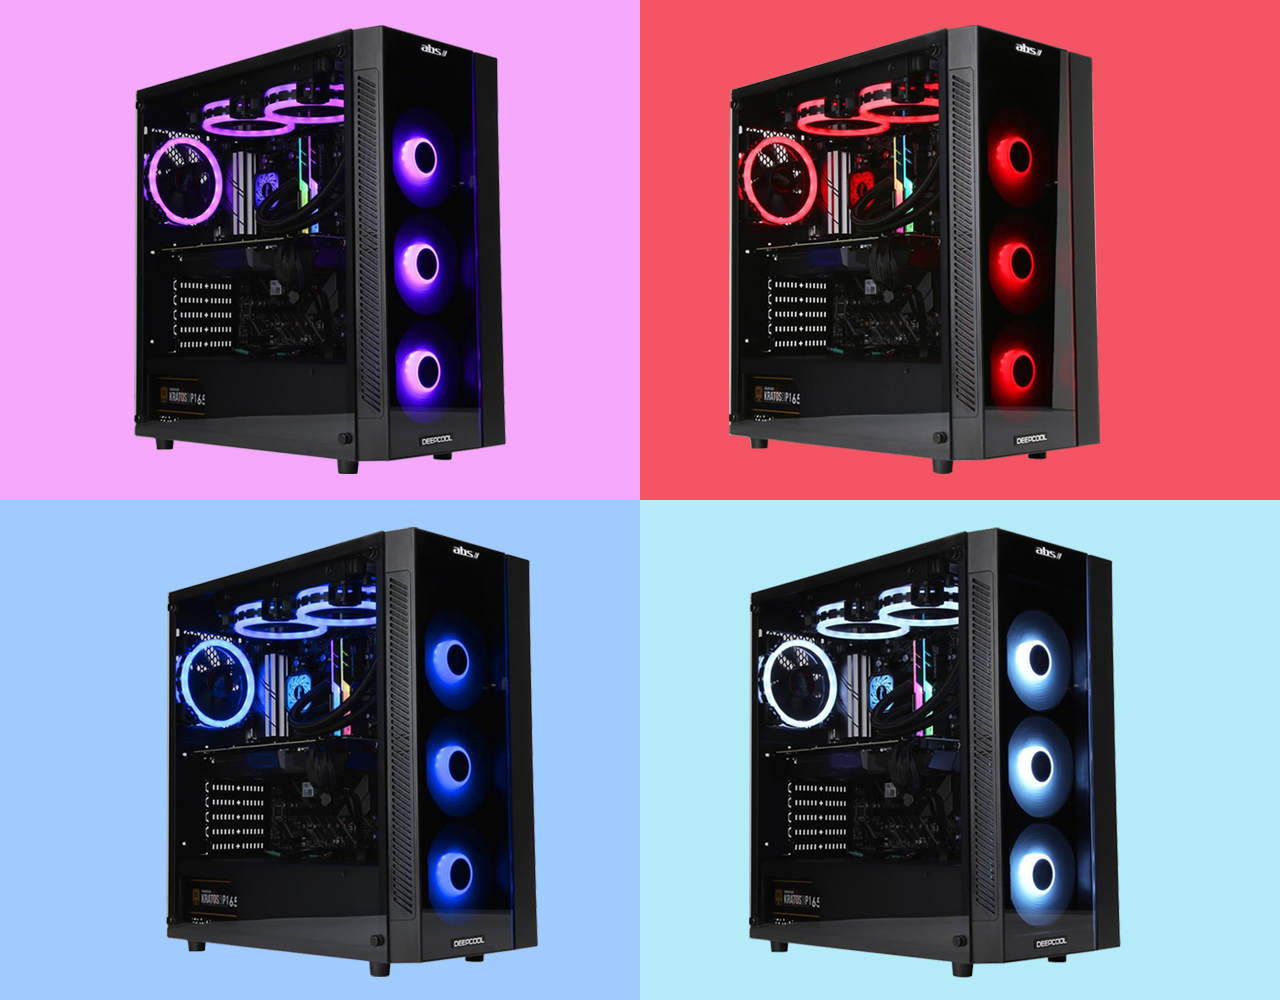 Four desktops with one showing light purple light, one showing light red light, one showing light blue light, and very light bue hue.